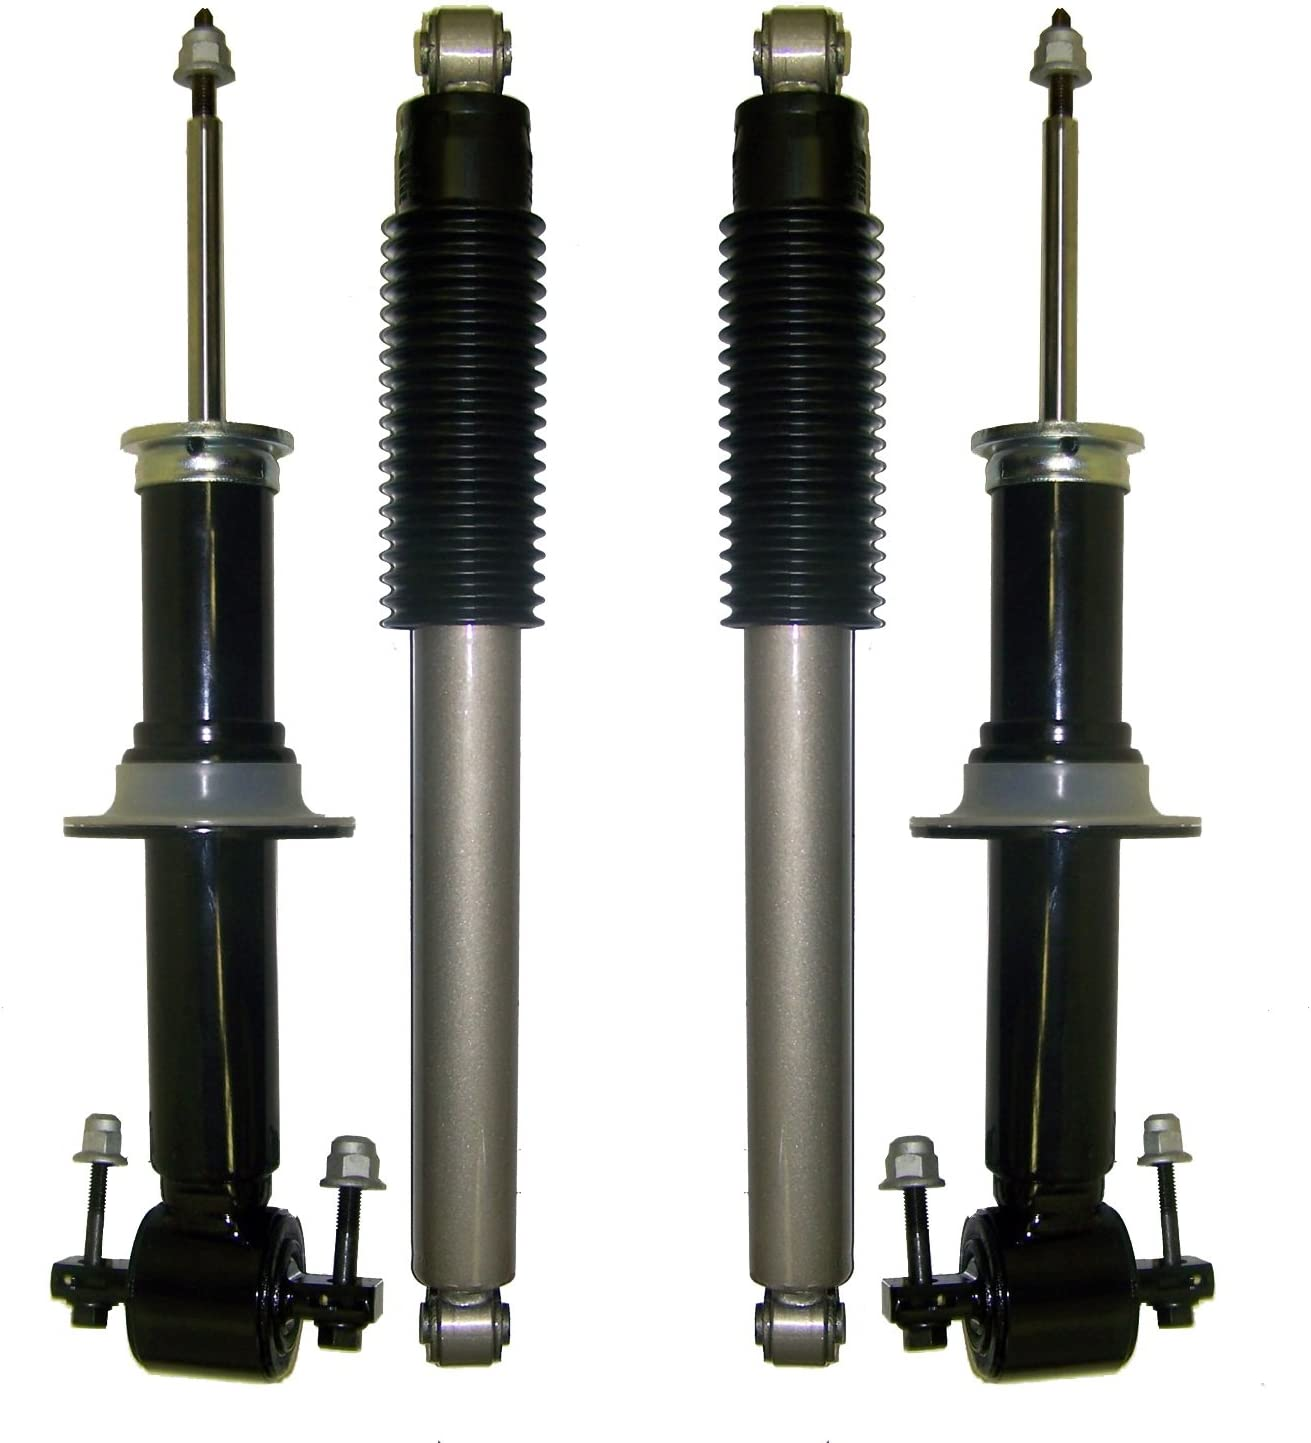 Suncore 151G-30-4-ASSY Passive Suspension Conversion Kit Incl Front Struts And Rear Coil Over Gas Shocks Passive Suspension Conversion Kit